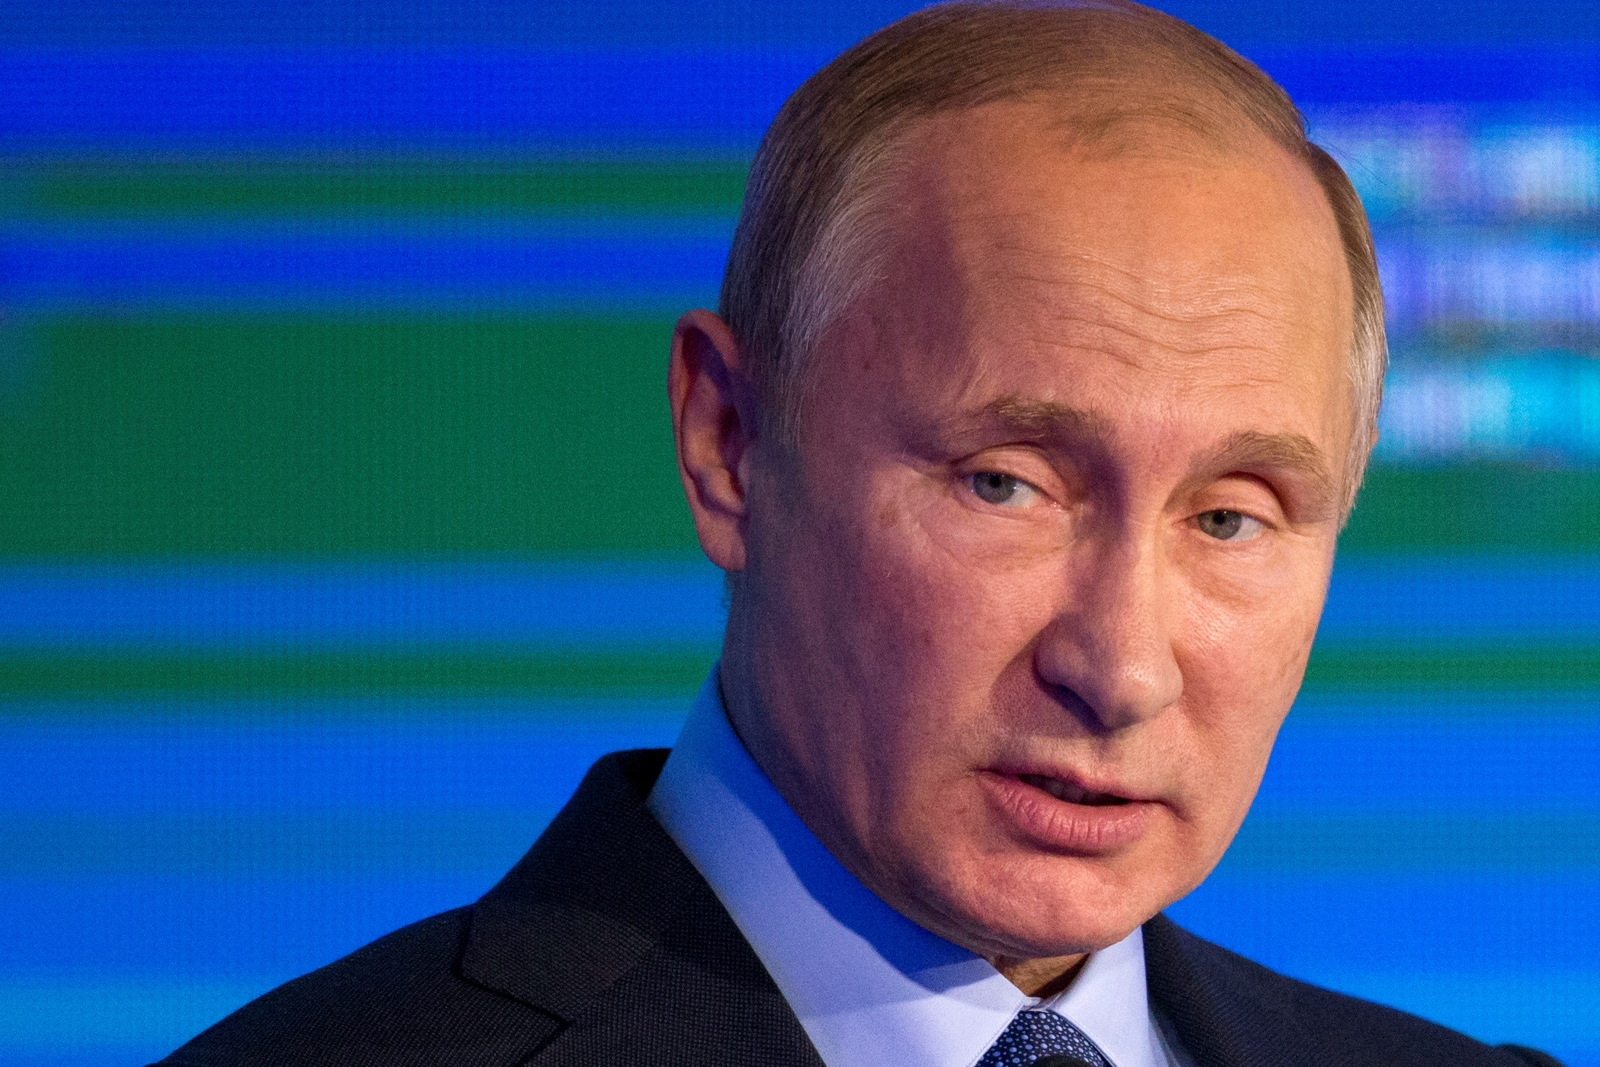 Vladimir Putin says US was in 'hysteria' over alleged Russian election ploy